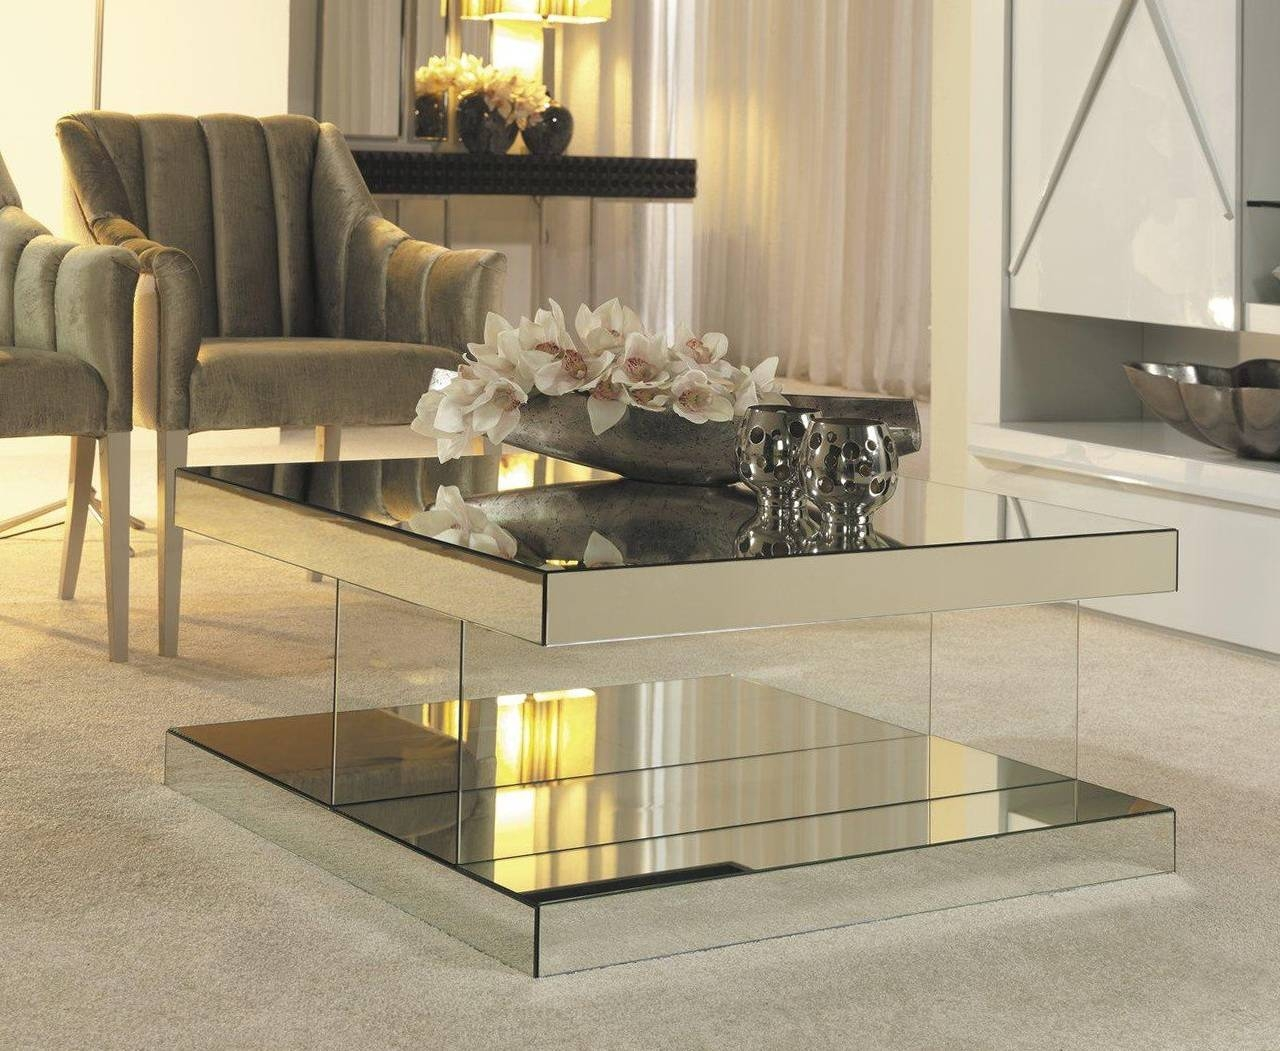 Diy Mirror Coffee Table – Waffle House pertaining to Occasional Tables Mirrors (Image 9 of 15)